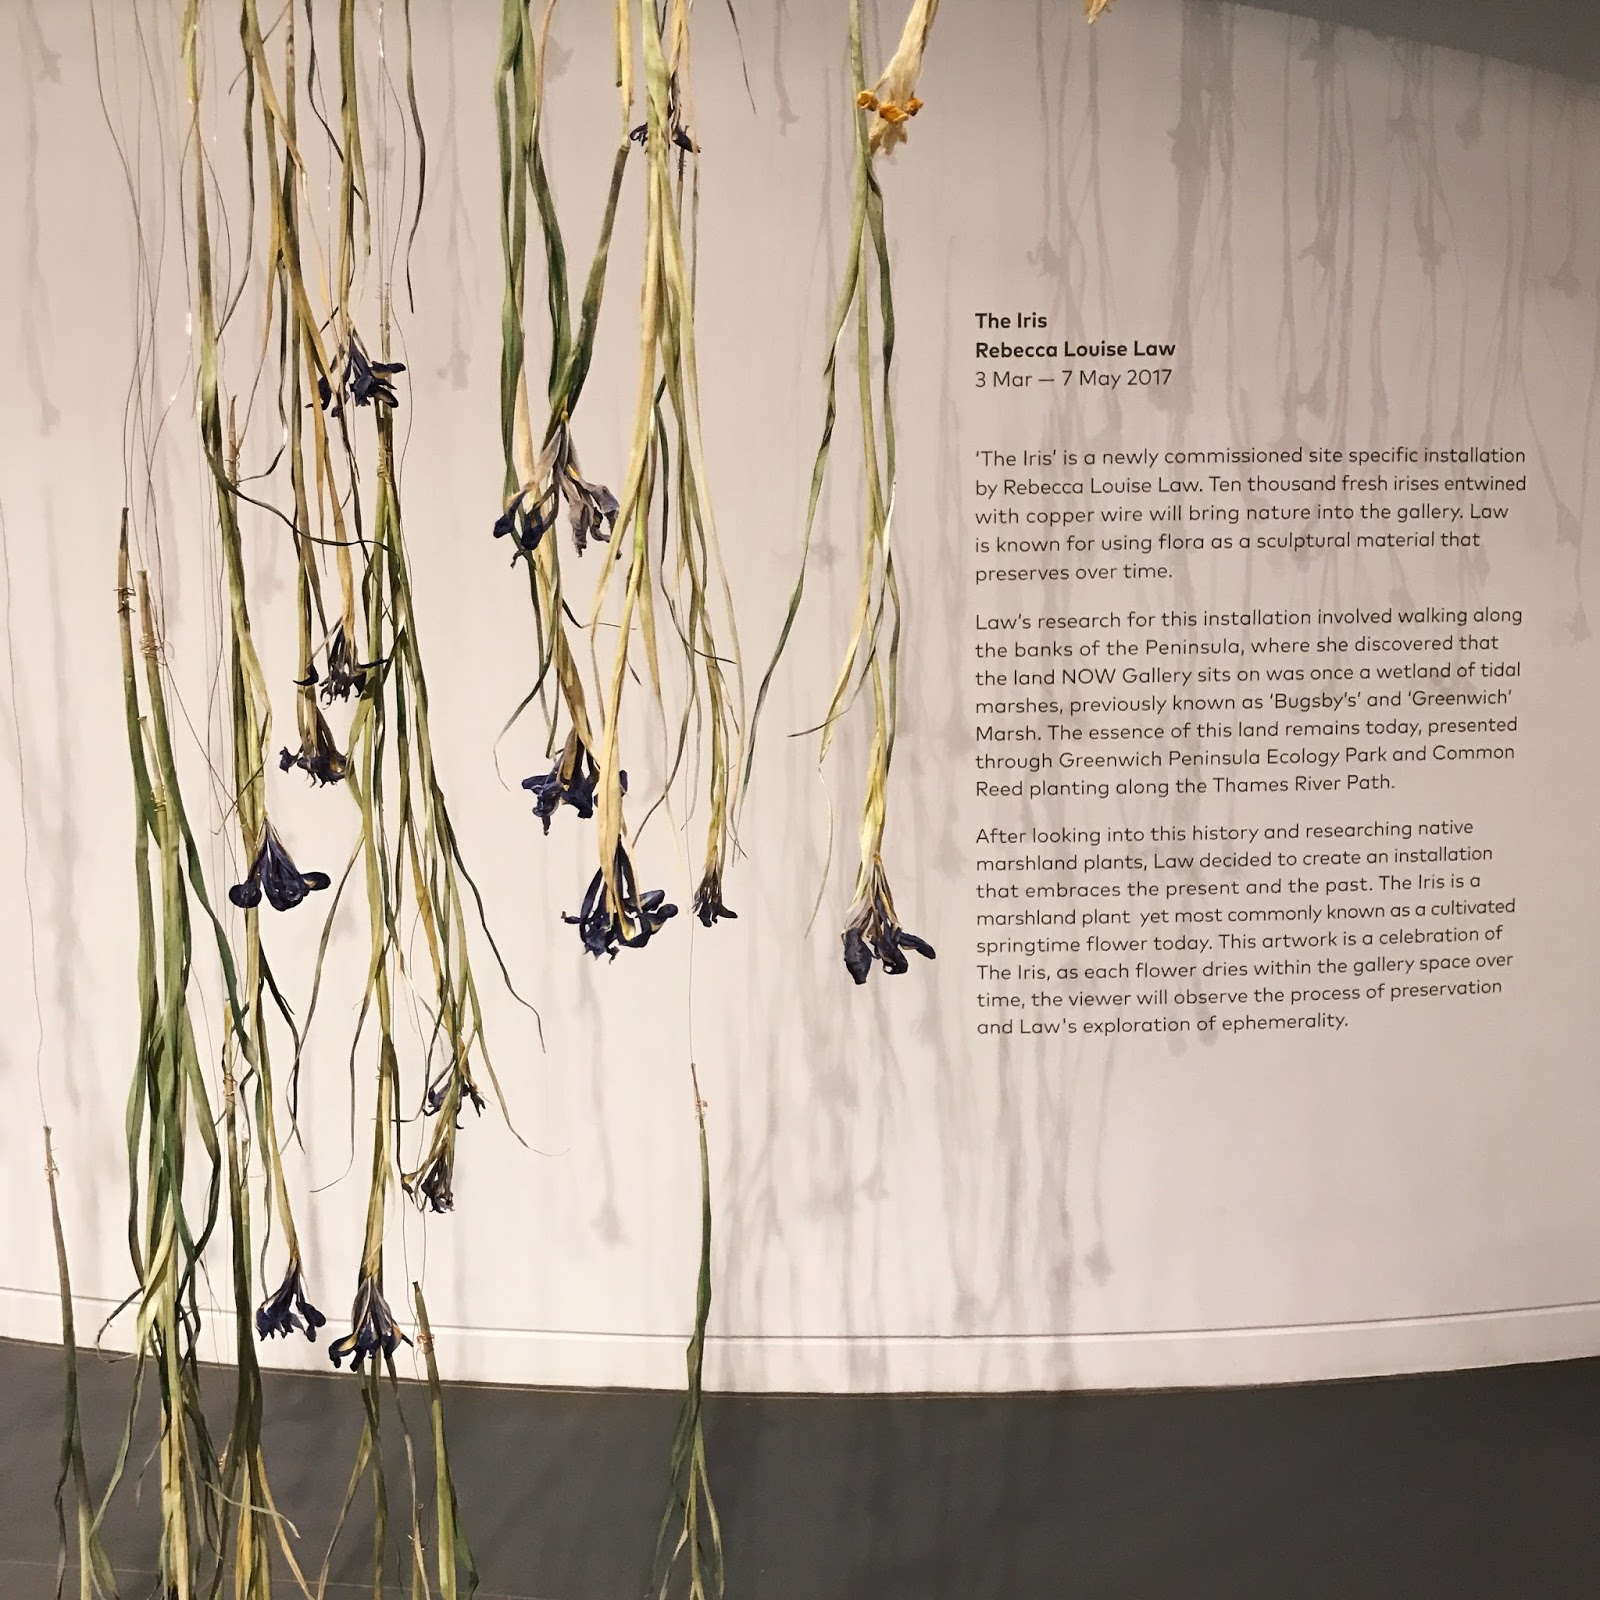 Iris falling flower installation at Now Gallery